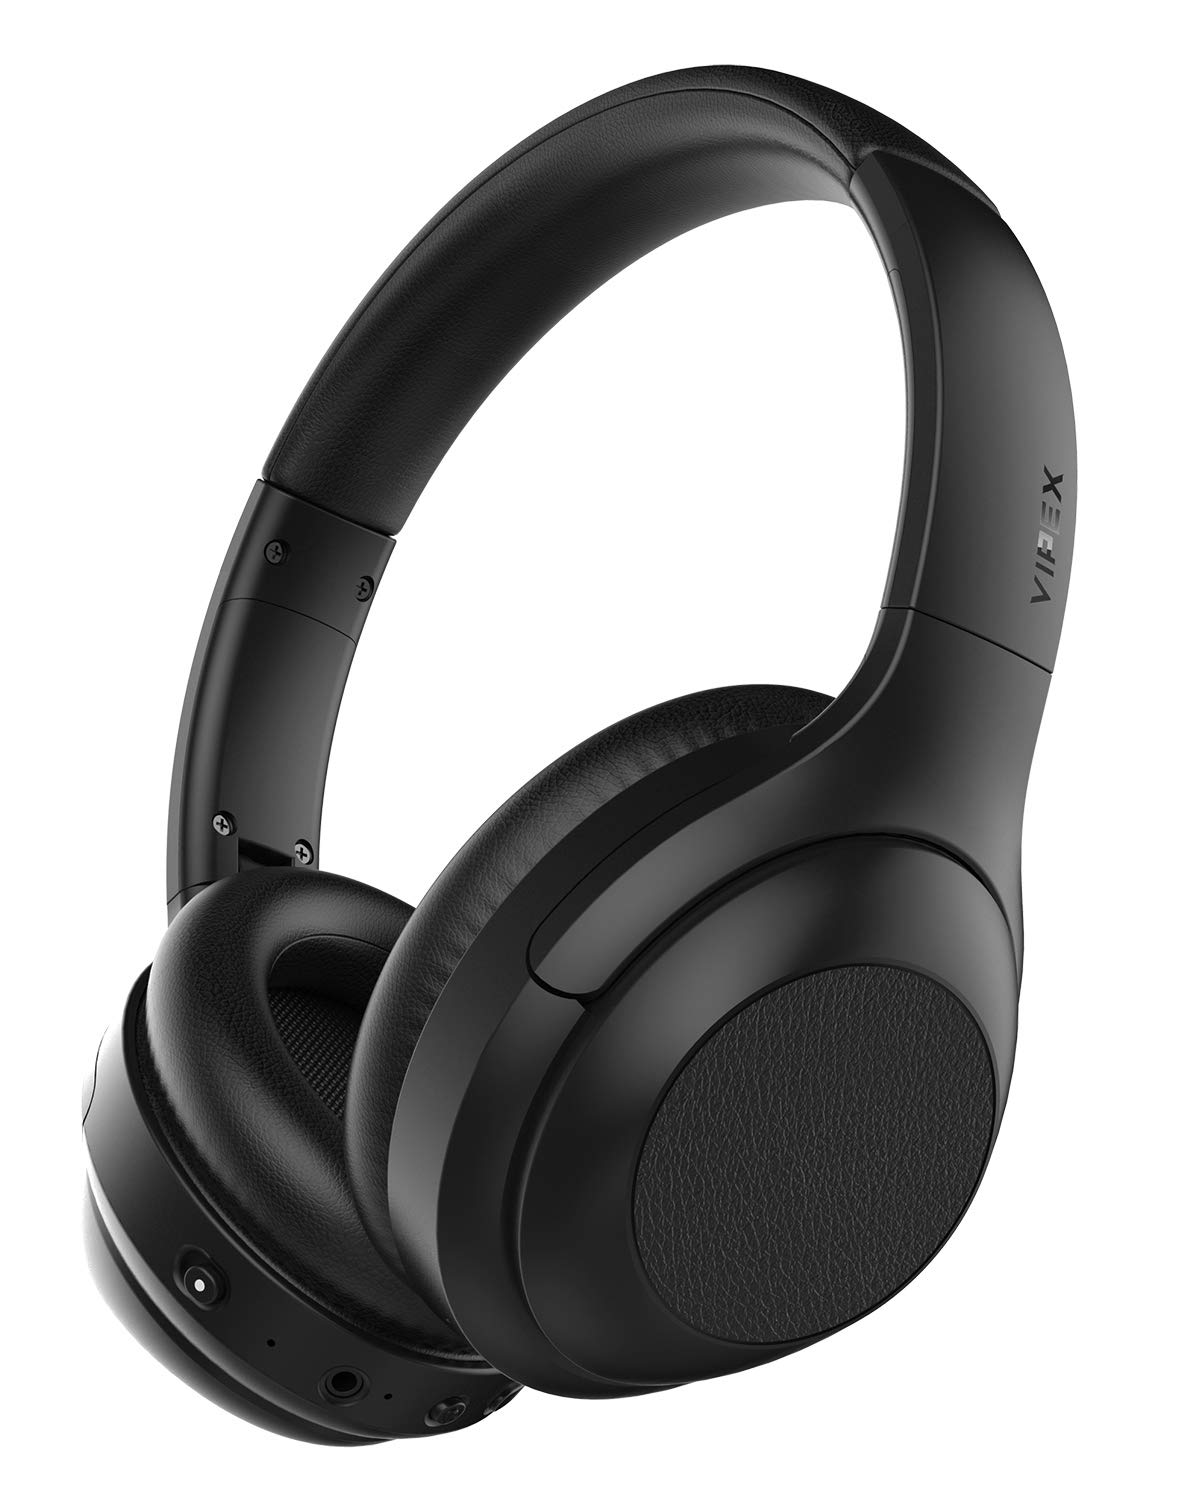 Active Noise Cancelling Headphones, Bluetooth Wireless Headphone Over Ear Headphones with Mic, Hi-Fi Sound Deep Bass, Quick Charge, Up to 30H Playtime for Work Travel